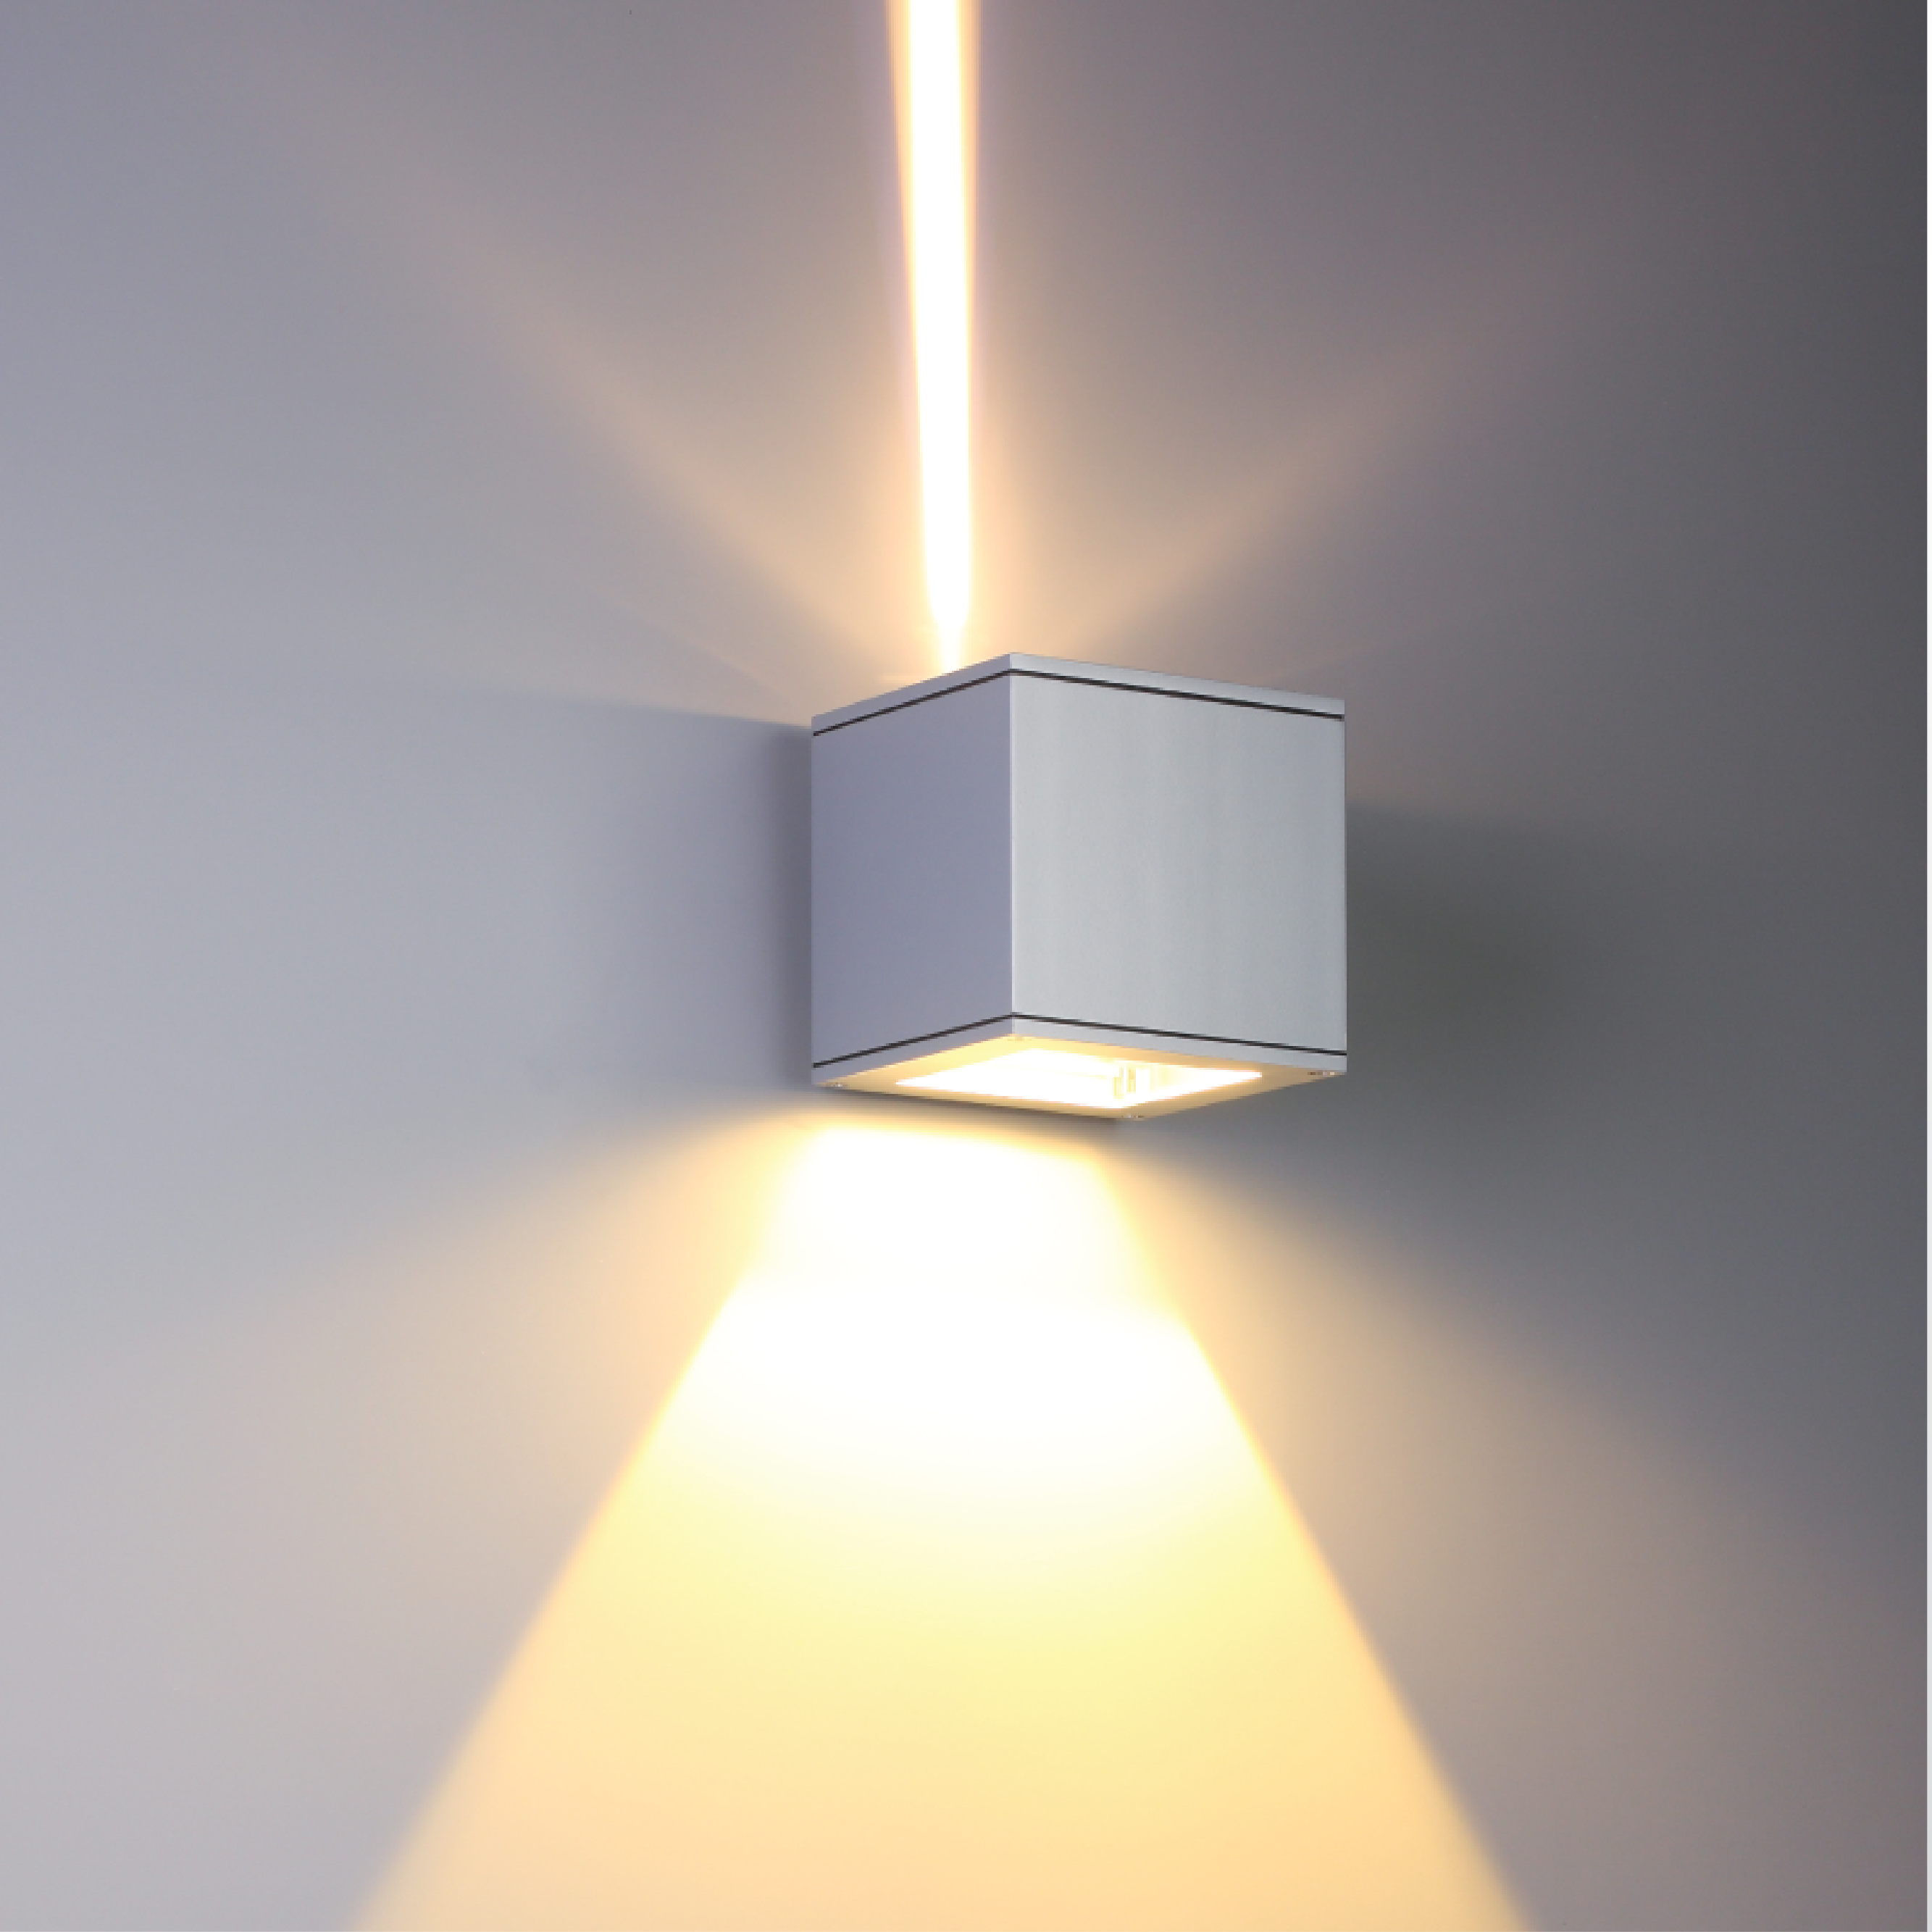 Wall Sconces With Up And Down Lighting : Surface Luminaires : Matrix Wall Light - www.ligmanlightingusa.com